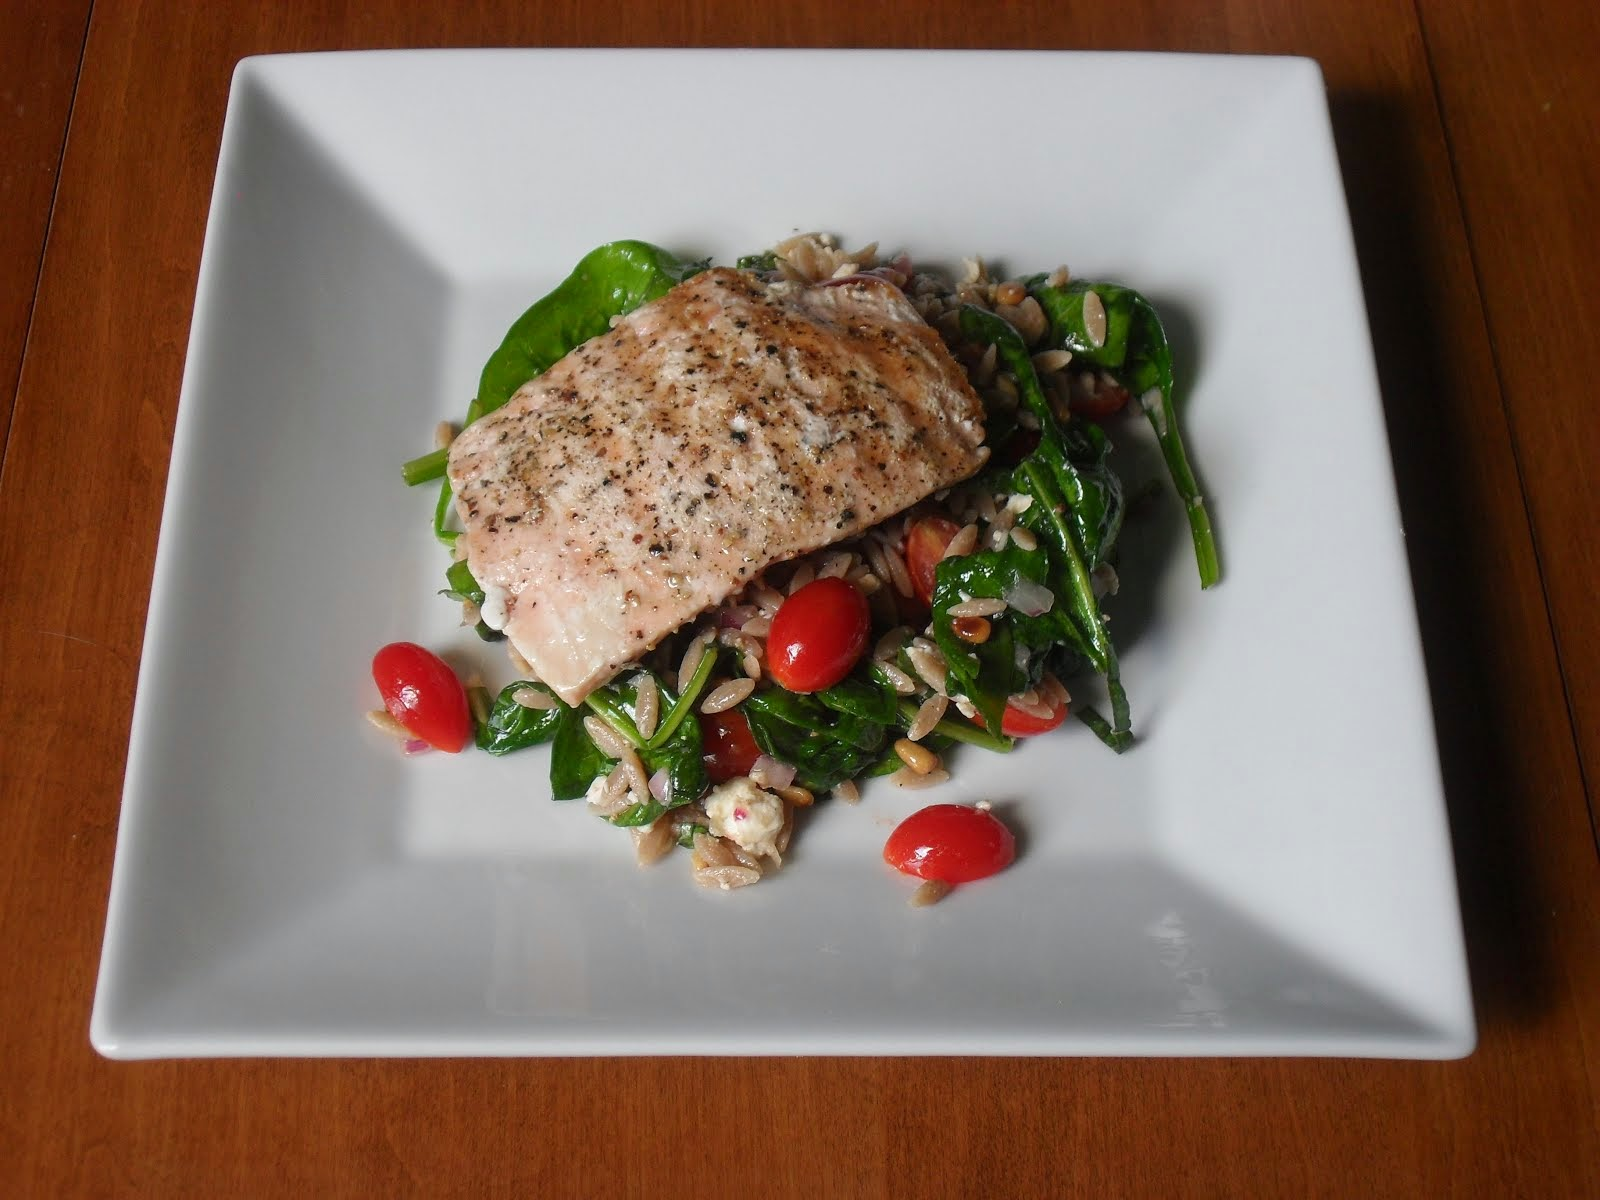 Grilled Salmon with Oroz, Feta, and Red Wine Vinaigrette